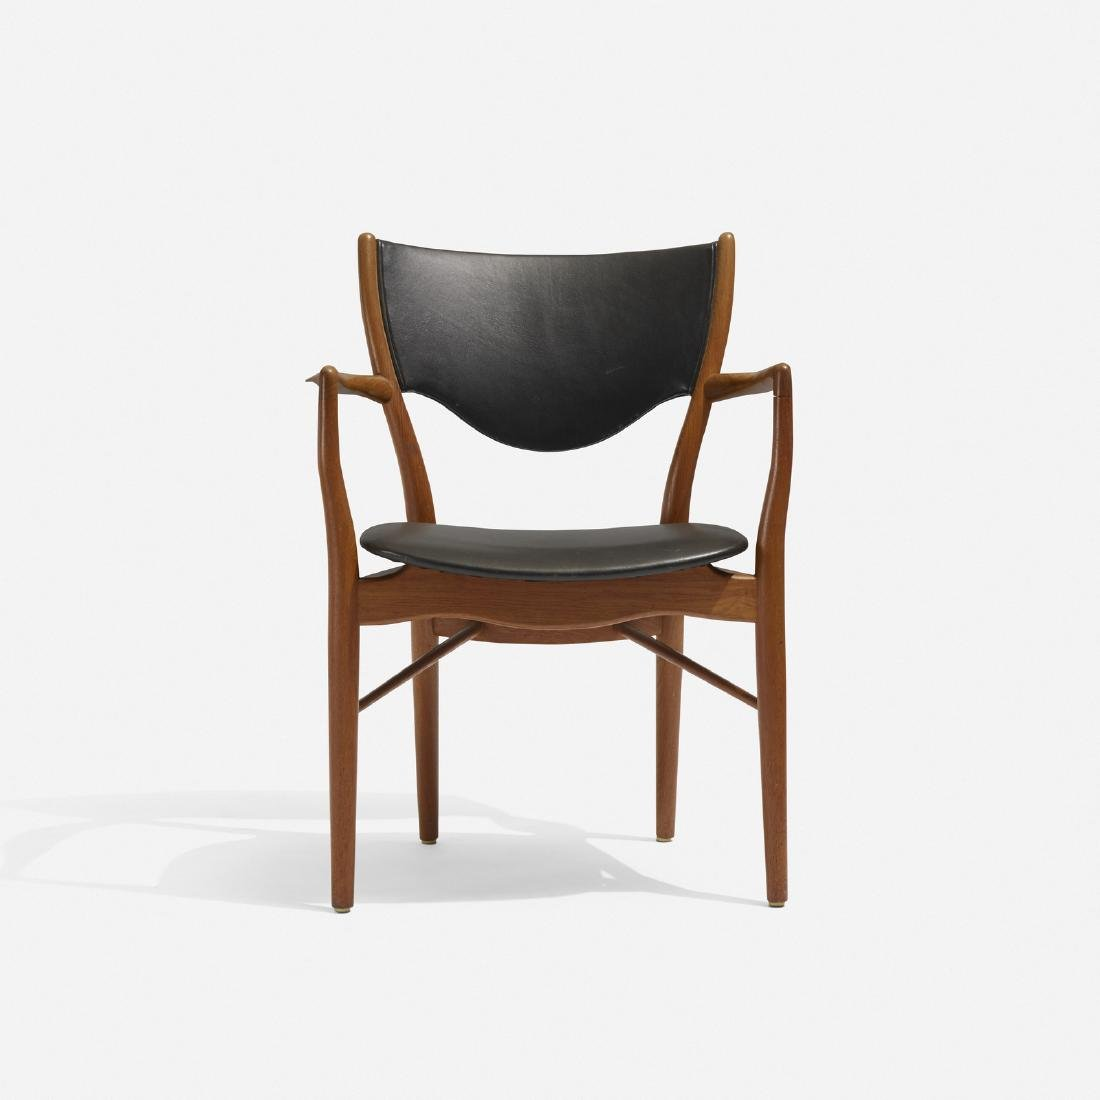 Finn Juhl, armchair, model BO-46